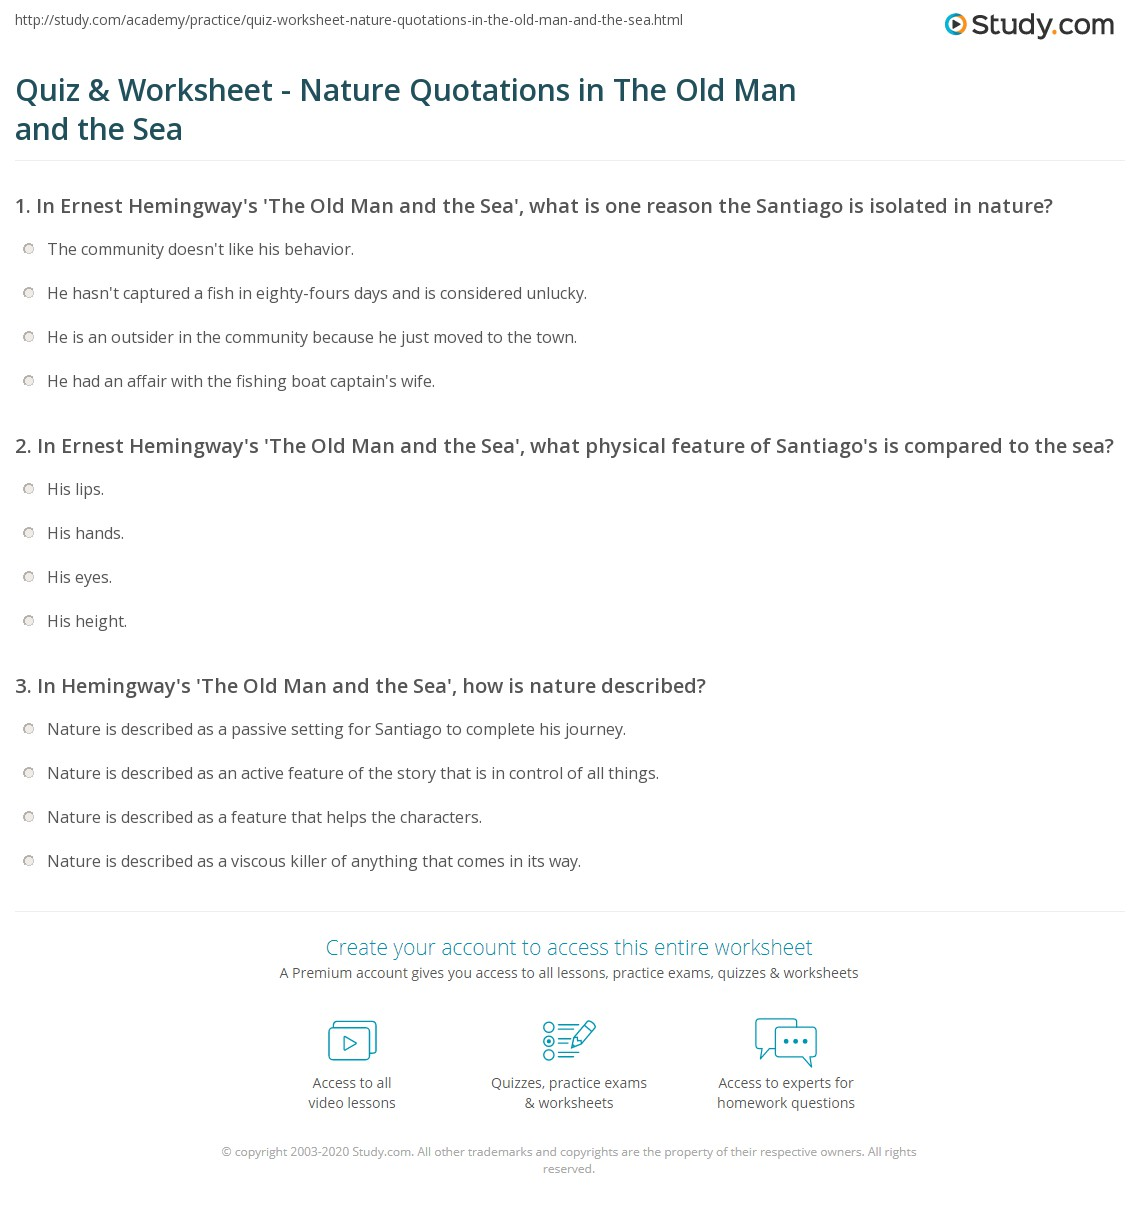 Quiz Worksheet Nature Quotations In The Old Man And The Sea